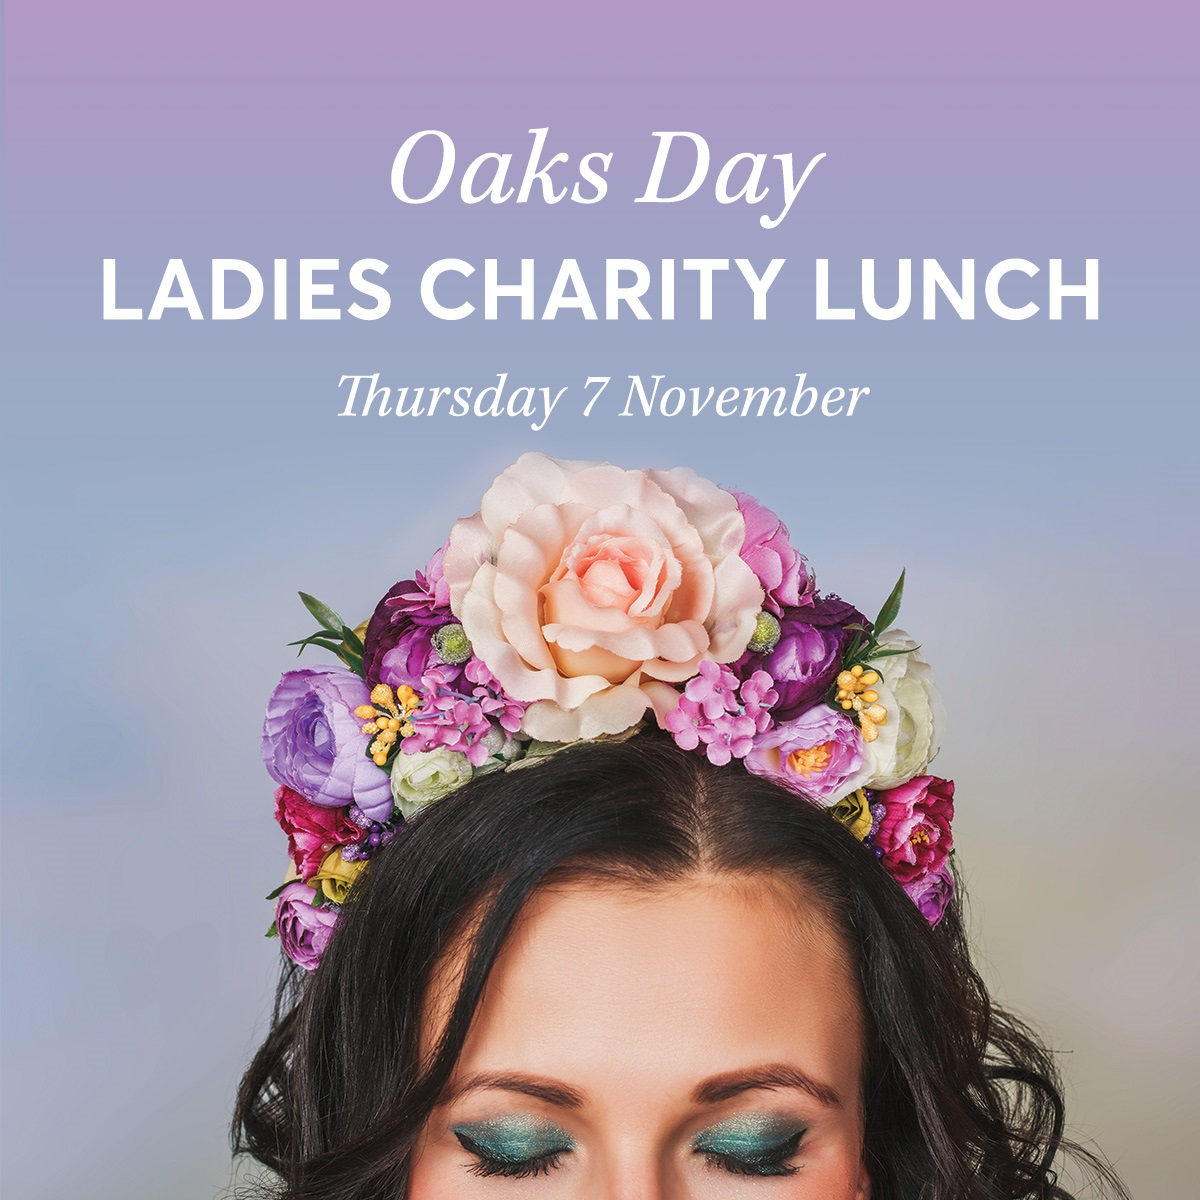 Oaks Day Ladies Charity Lunch Square